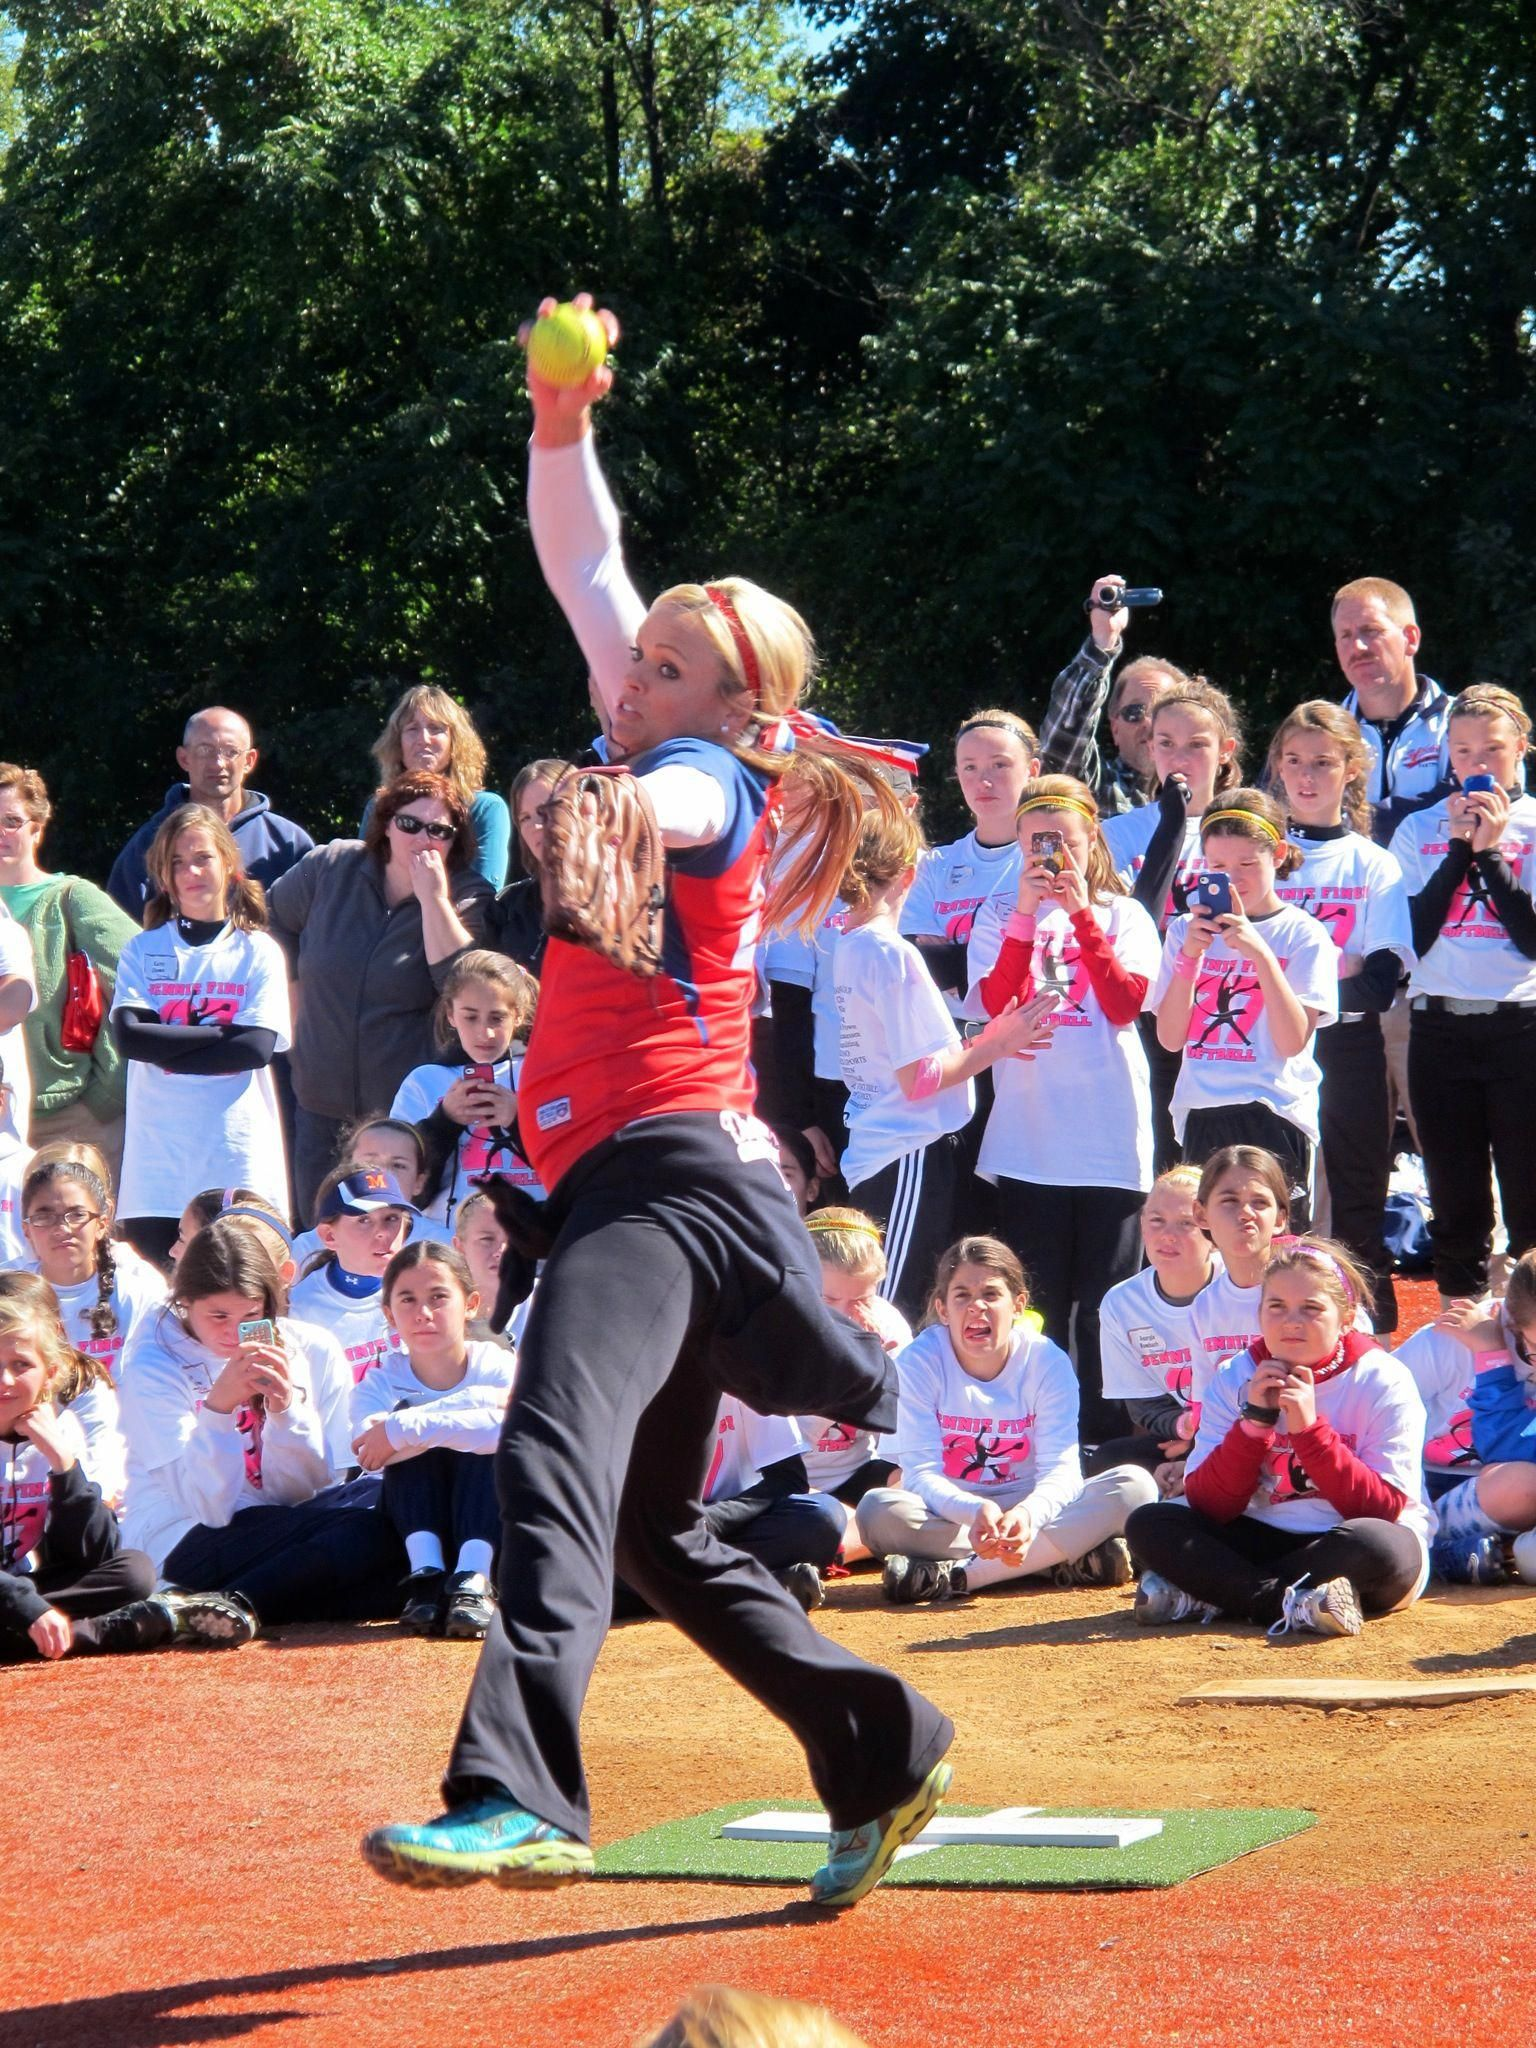 Jenny finch pitching demonstration at her softball camp